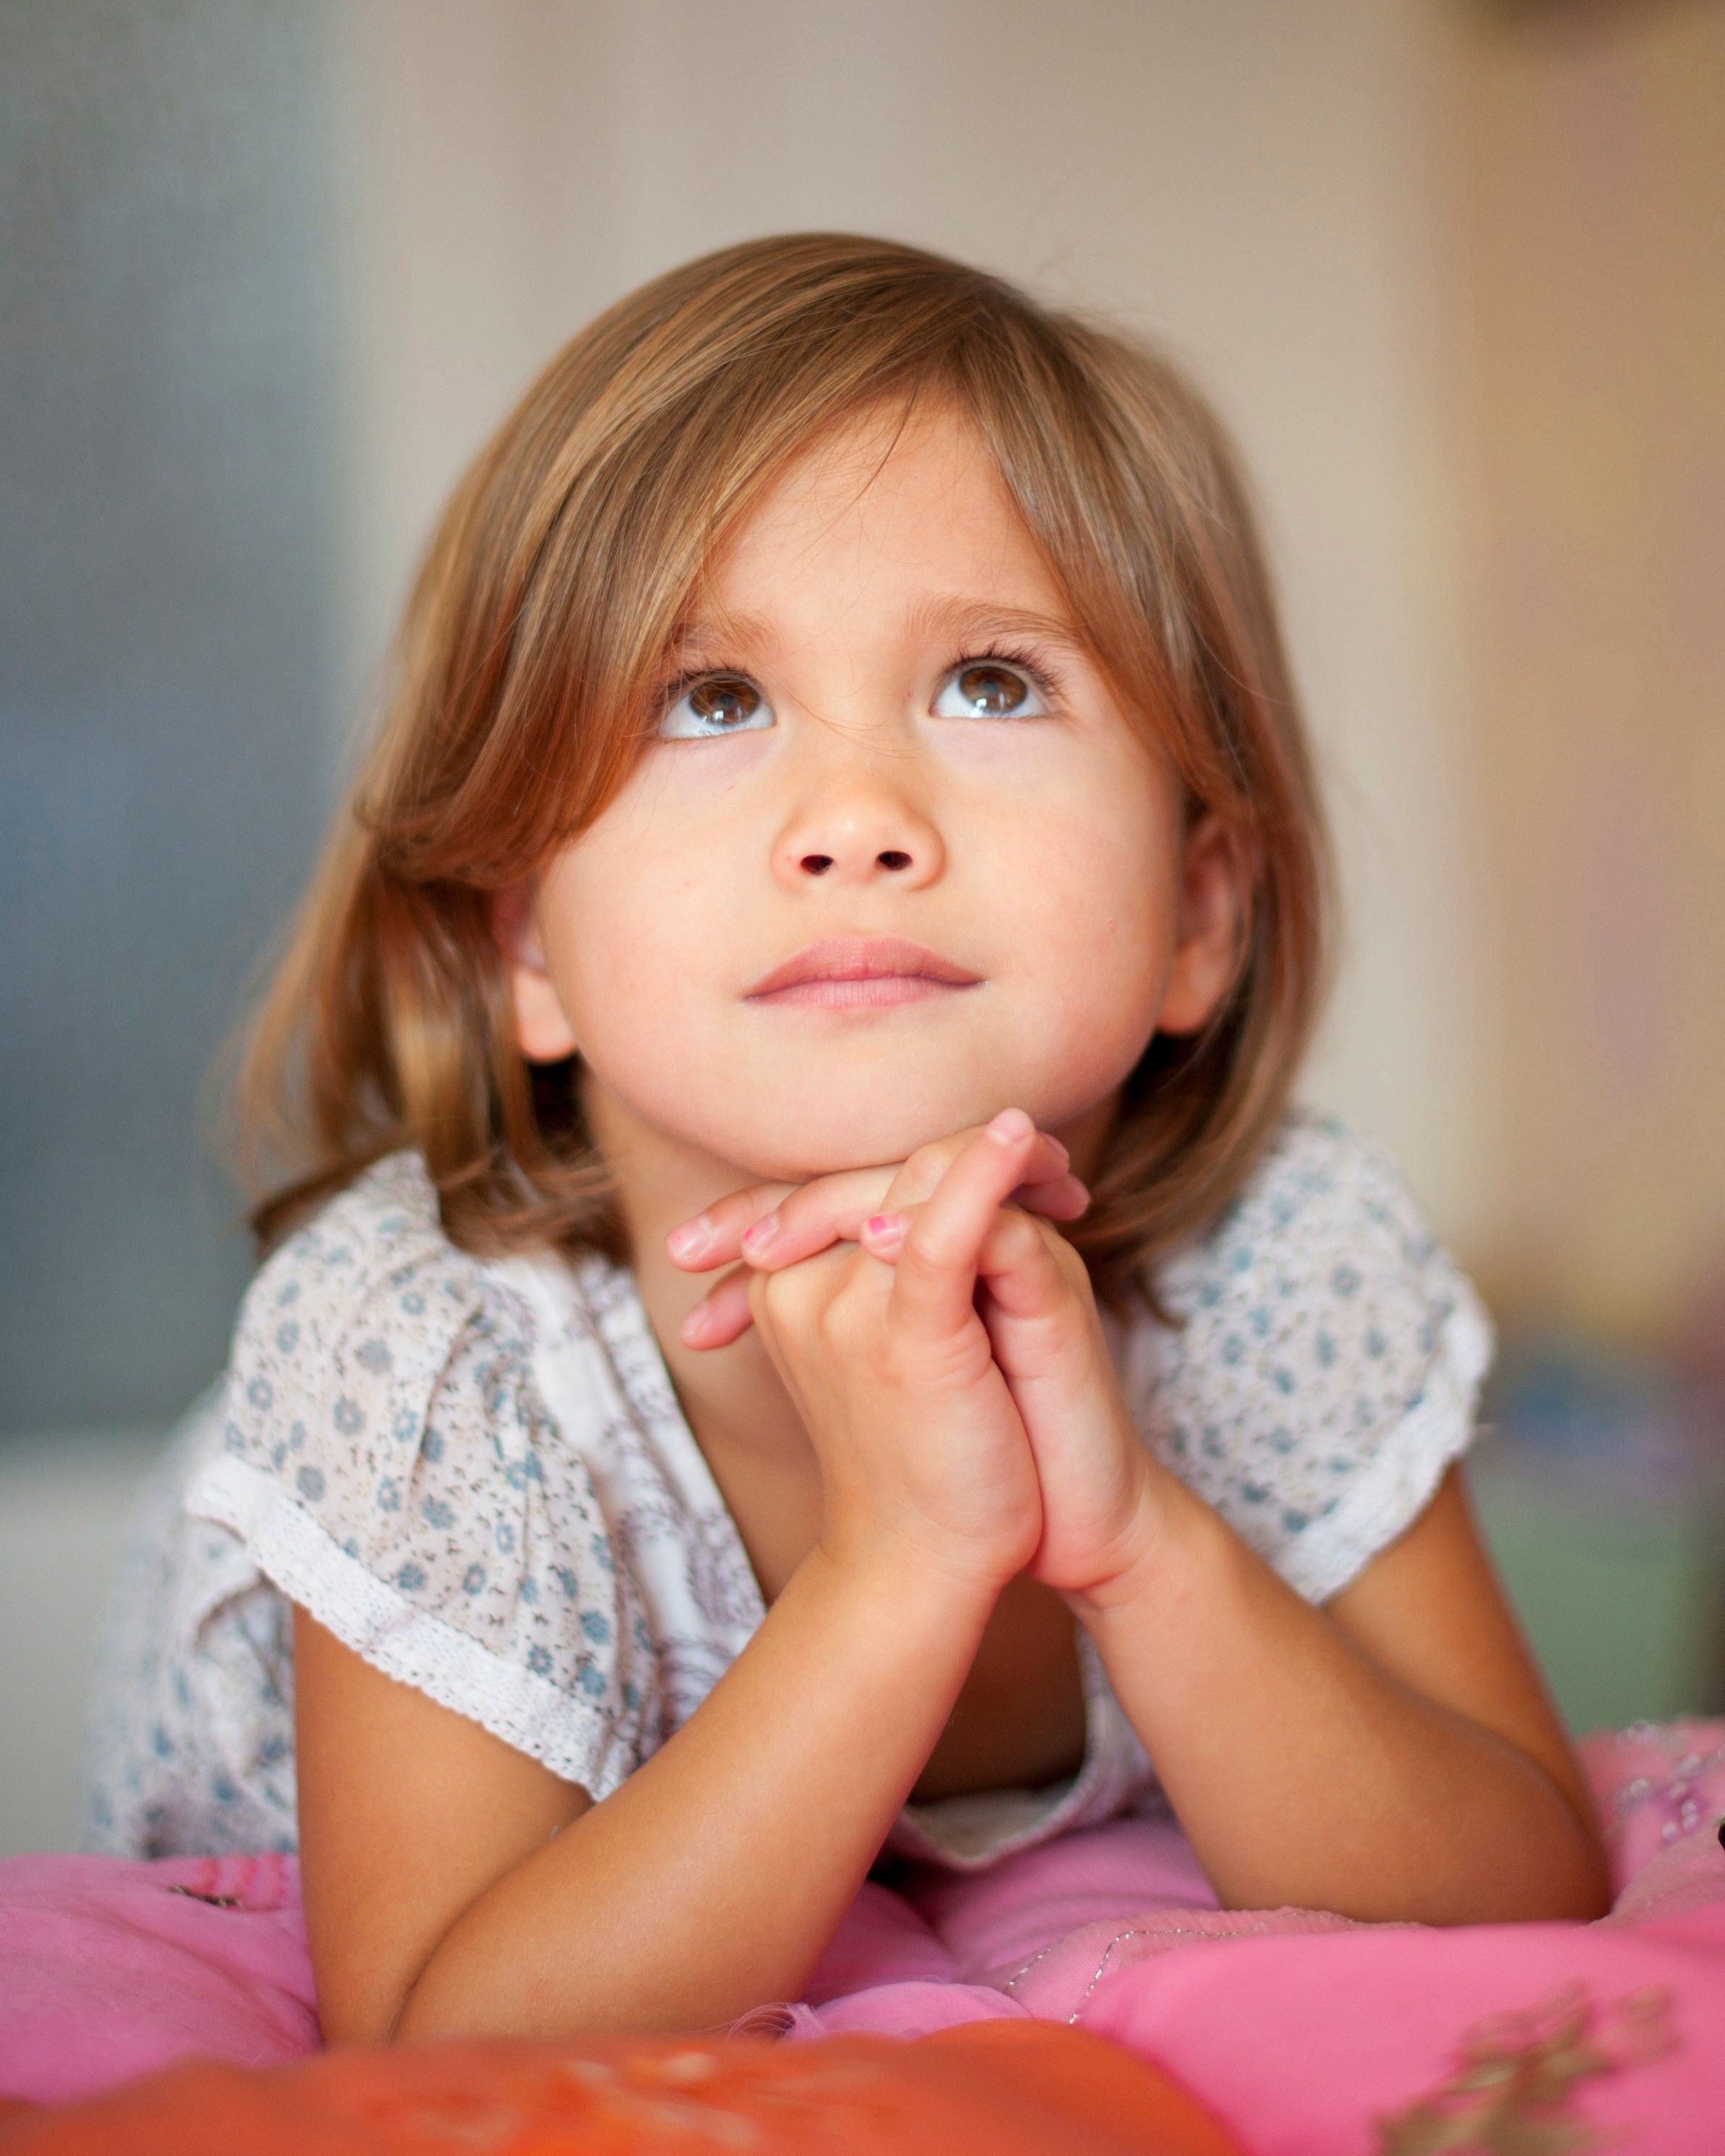 A girl prays kneeling down by her bed.